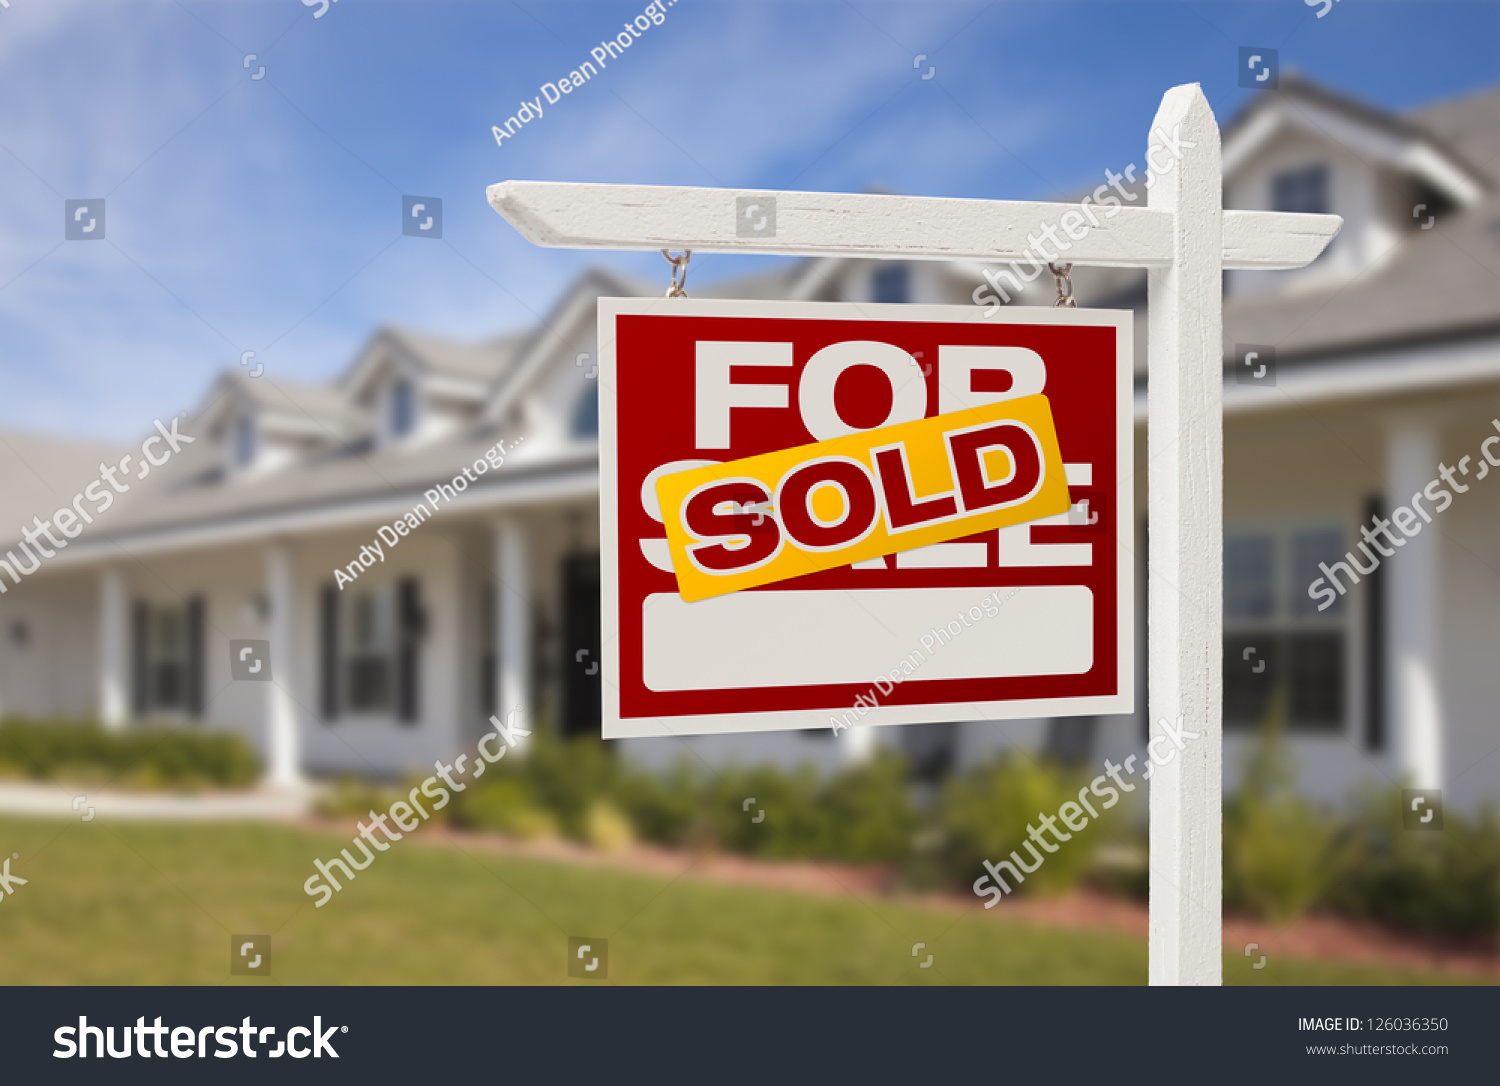 For Sale Sold Sign: For Sale Sold Real Estate Sign And New House. Stock Photo